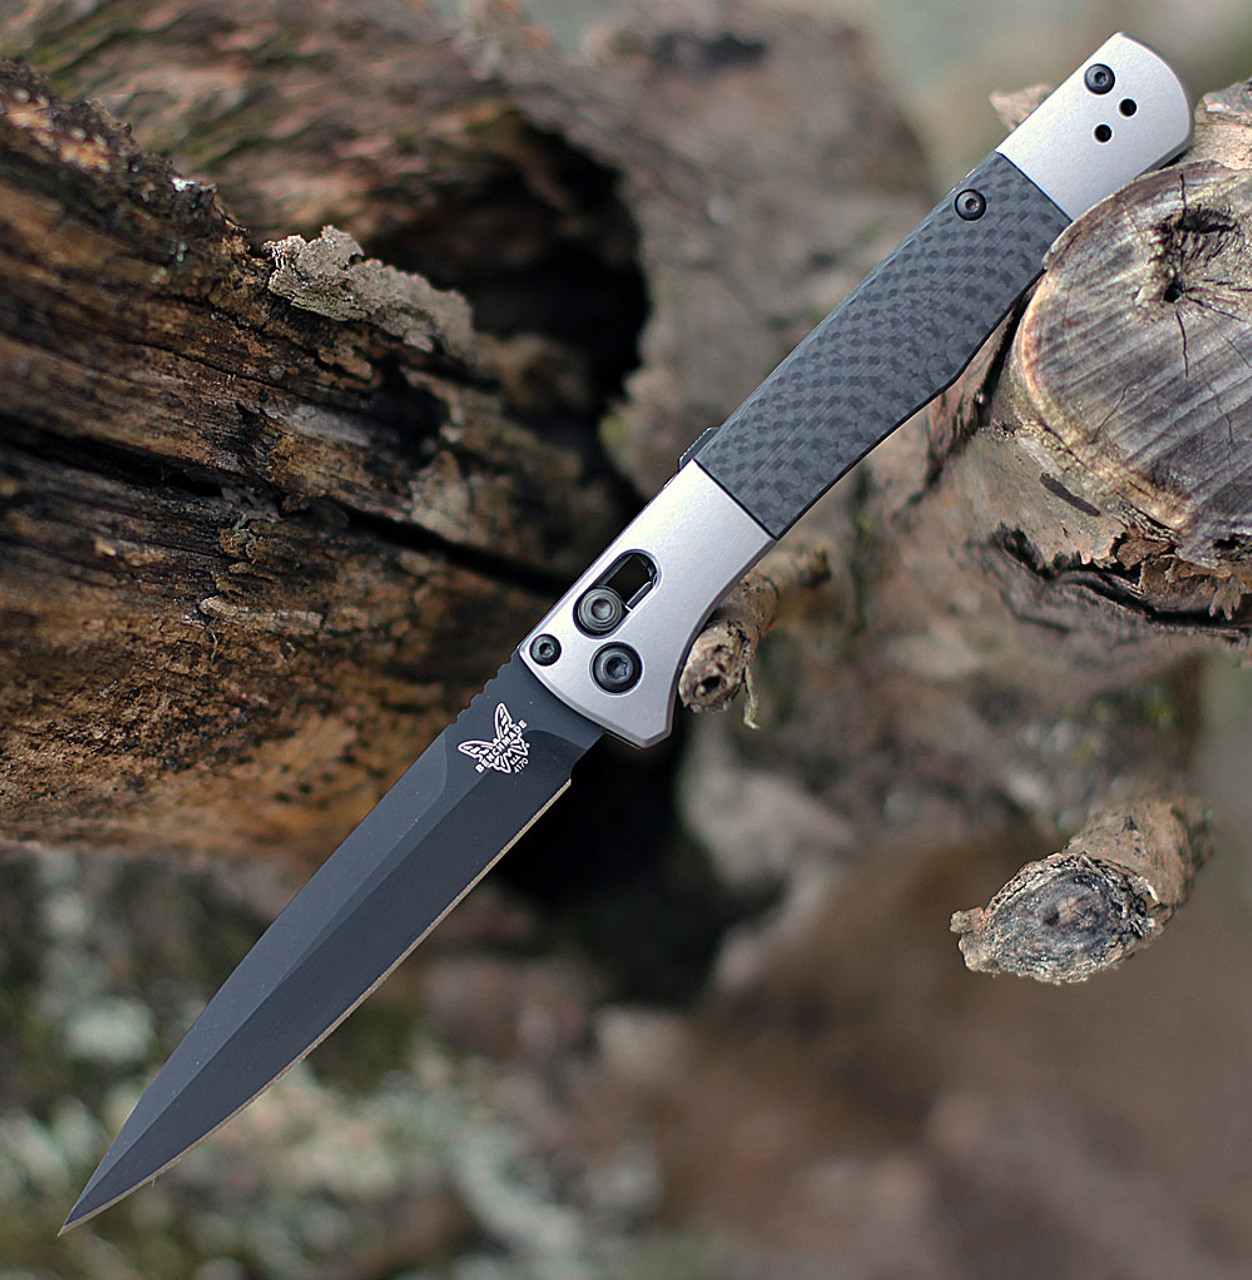 """Benchmade 4170BK Auto Fact, 3.95"""" Black DLC Coated CPM-S90V Spear-point Blade, Aluminum w/Carbon Fiber inlays Handle"""